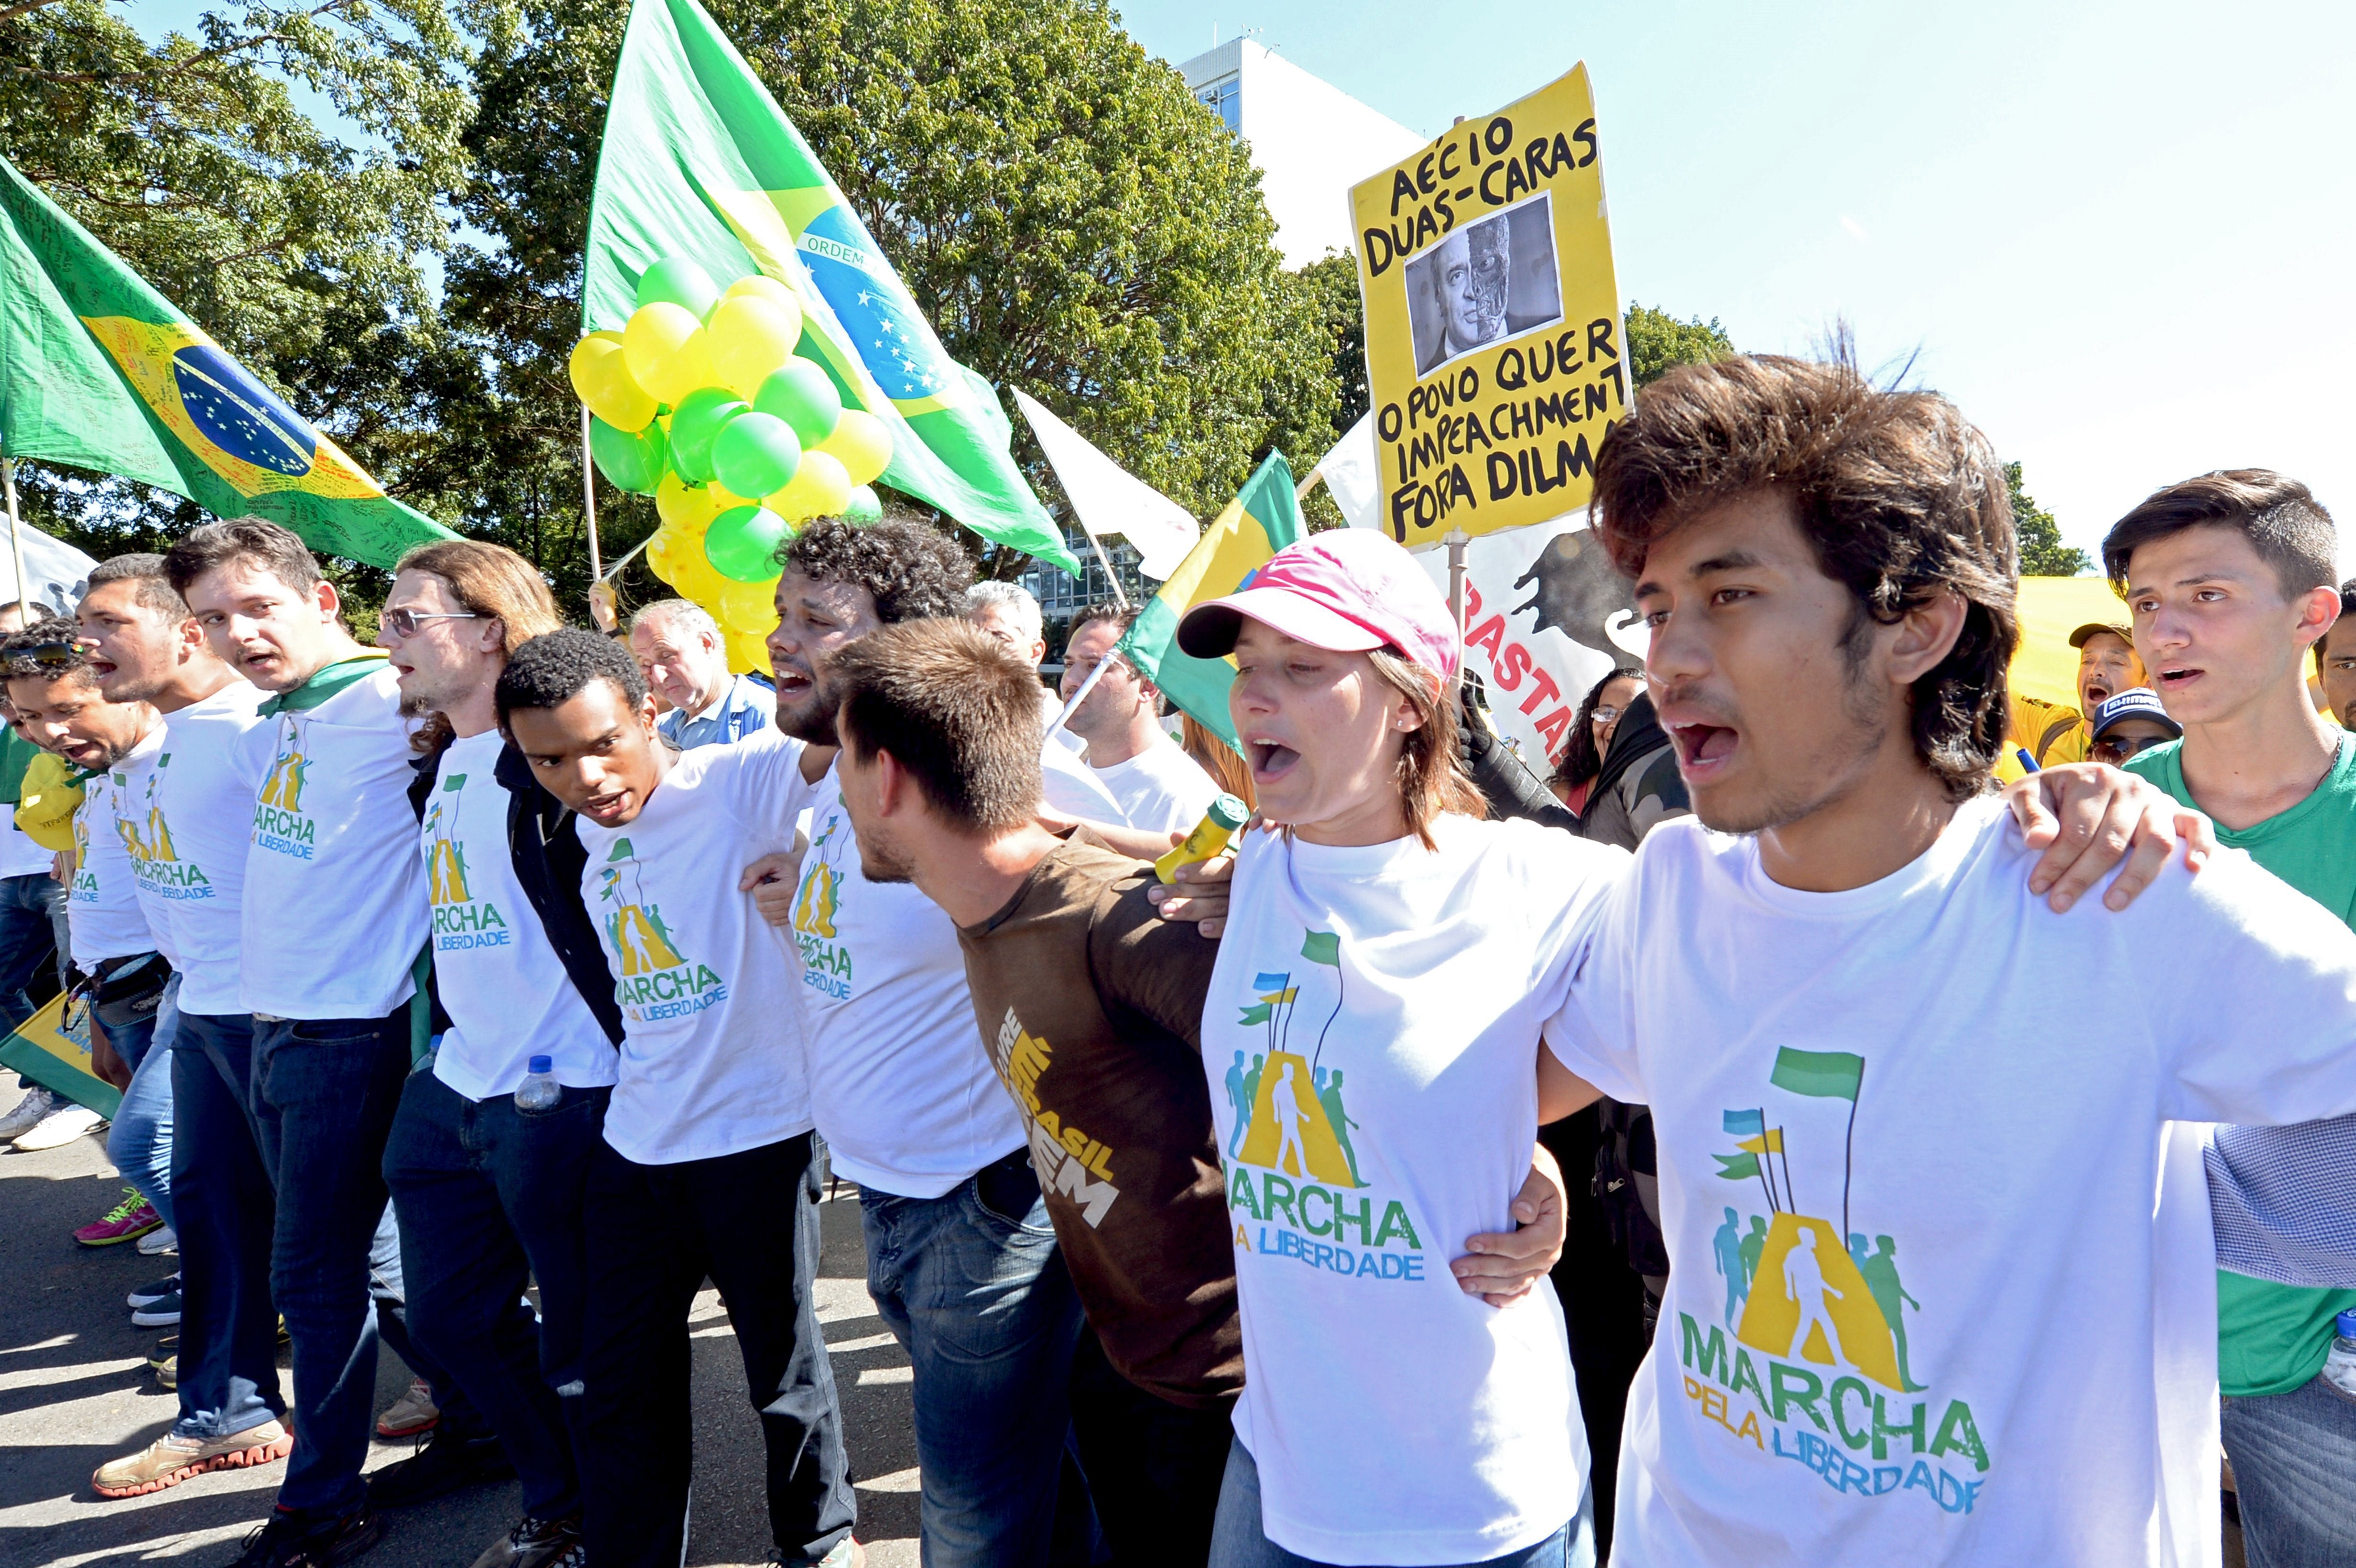 Kim Kataguiri (R), leader of the Free Brazil Movement (MBL), takes part in the March for Freedom in demand of President Dilma Rousseff's impeachment in Brasilia, Brazil on May 27, 2015. Kataguiri, a 19-year-old college drop out, is the face of MBL, a growing force which seeks to harness some of the energy of the 2013 protest movement which brought more than a million onto the streets. AFP PHOTO/EVARISTO SA        (Photo credit should read EVARISTO SA/AFP via Getty Images)